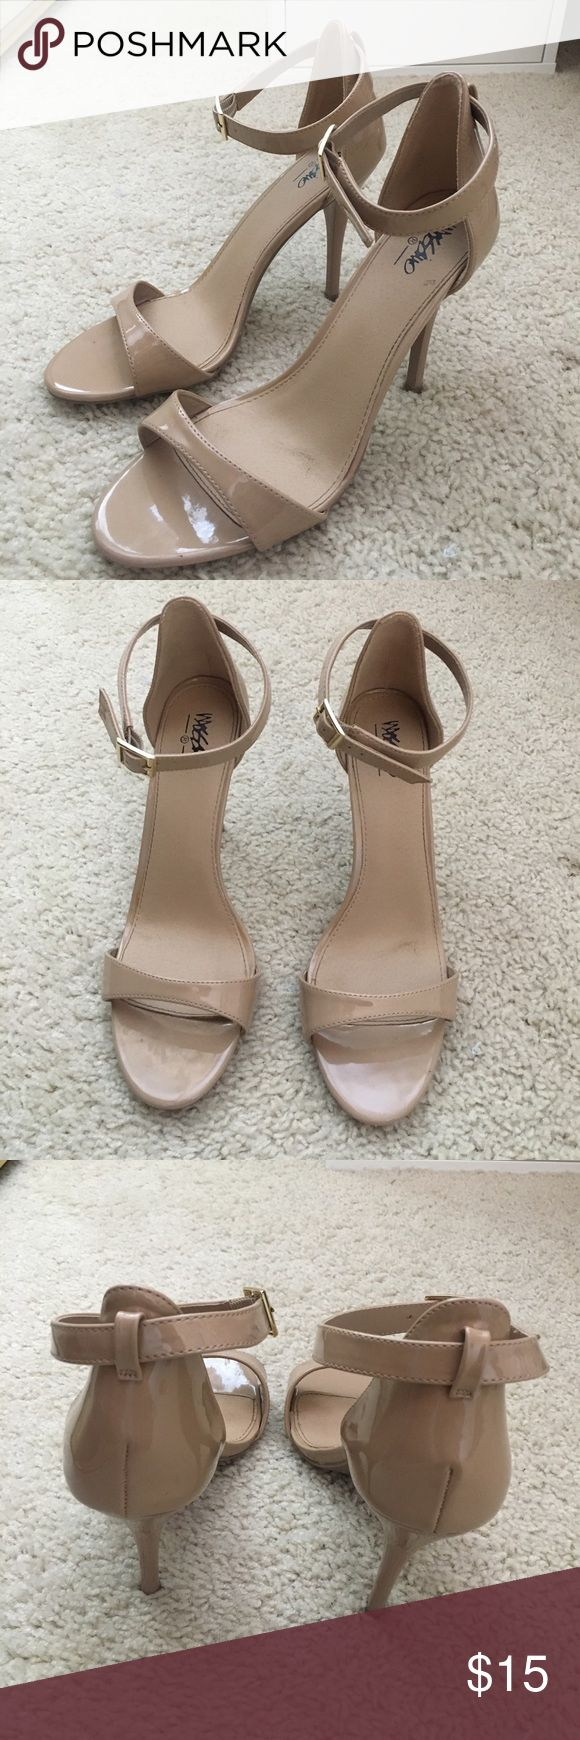 Mossimo high hells! Barely worn! From Target, in perfect condition! Mossimo Supply Co Shoes Heels